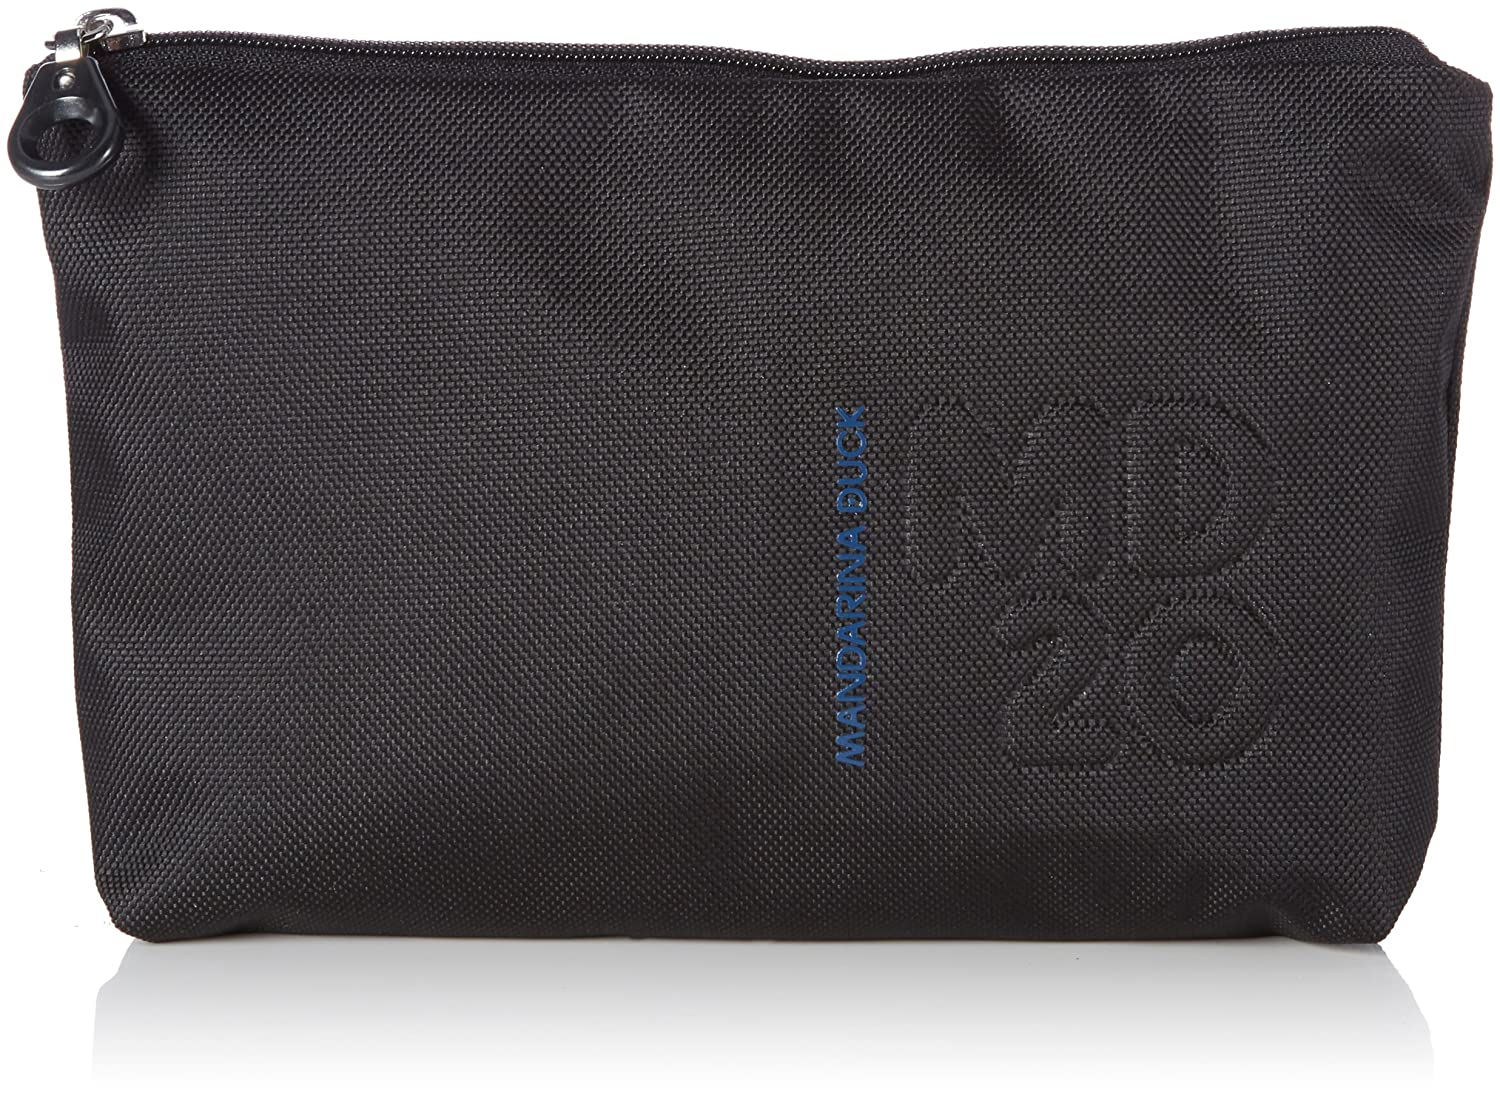 Mandarina Duck Damen Md20 Minuteria Clutch, 10x21x28.5 cm Blau (Dress Blue) P10QMMN9